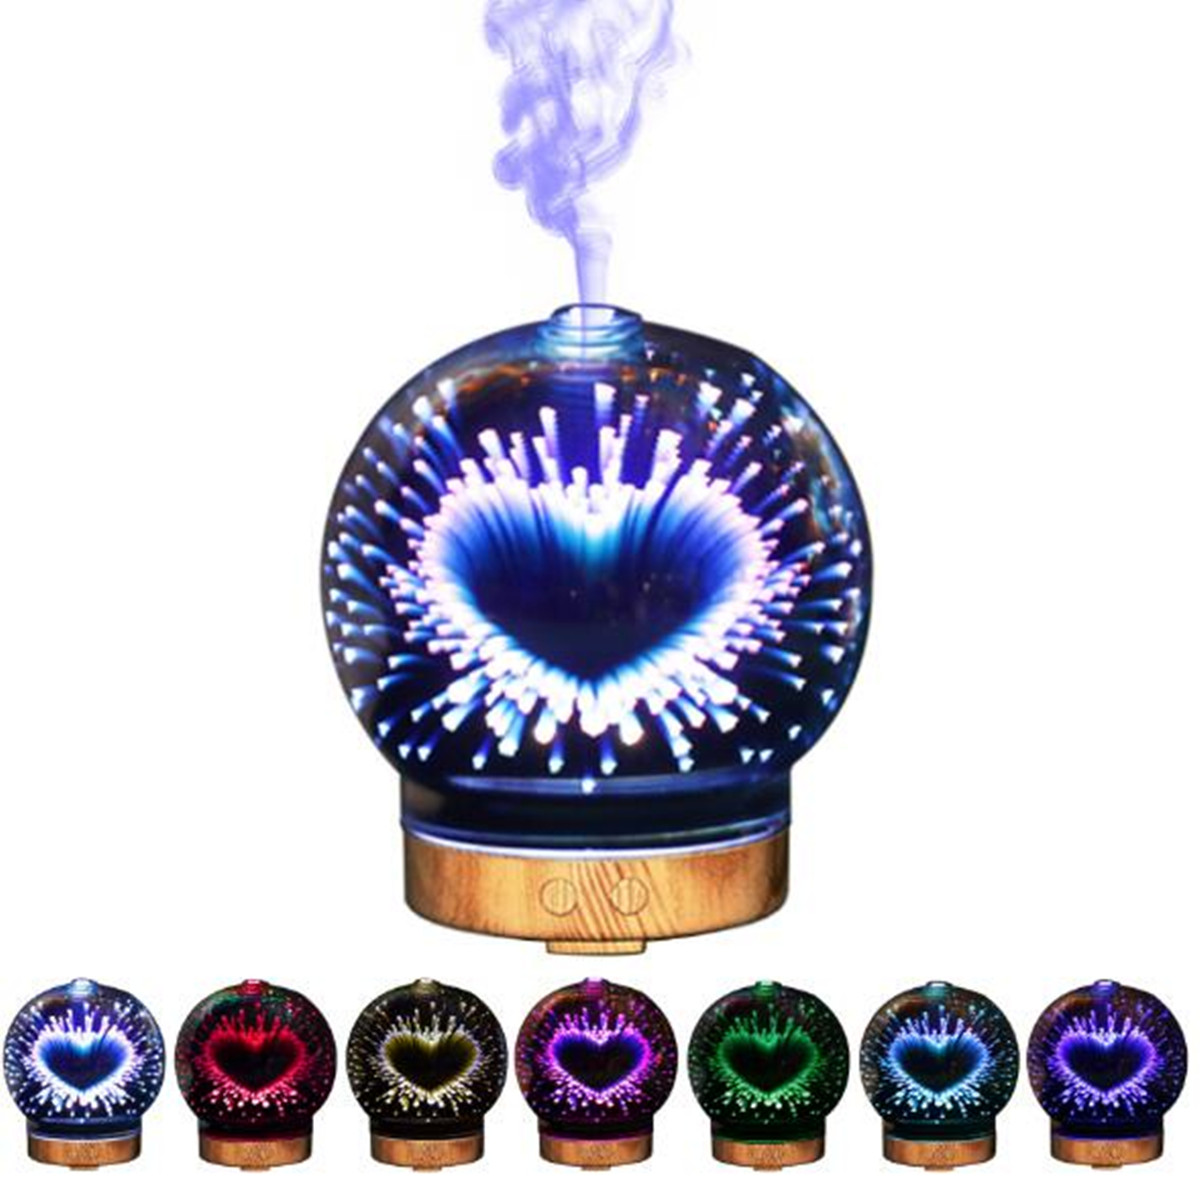 3D Heart LED Glass Ball Ultrasonic Aromatherapy Diffuser Humidifier Essential Oil Humidifier Home Air Conditioning Appliance New3D Heart LED Glass Ball Ultrasonic Aromatherapy Diffuser Humidifier Essential Oil Humidifier Home Air Conditioning Appliance New